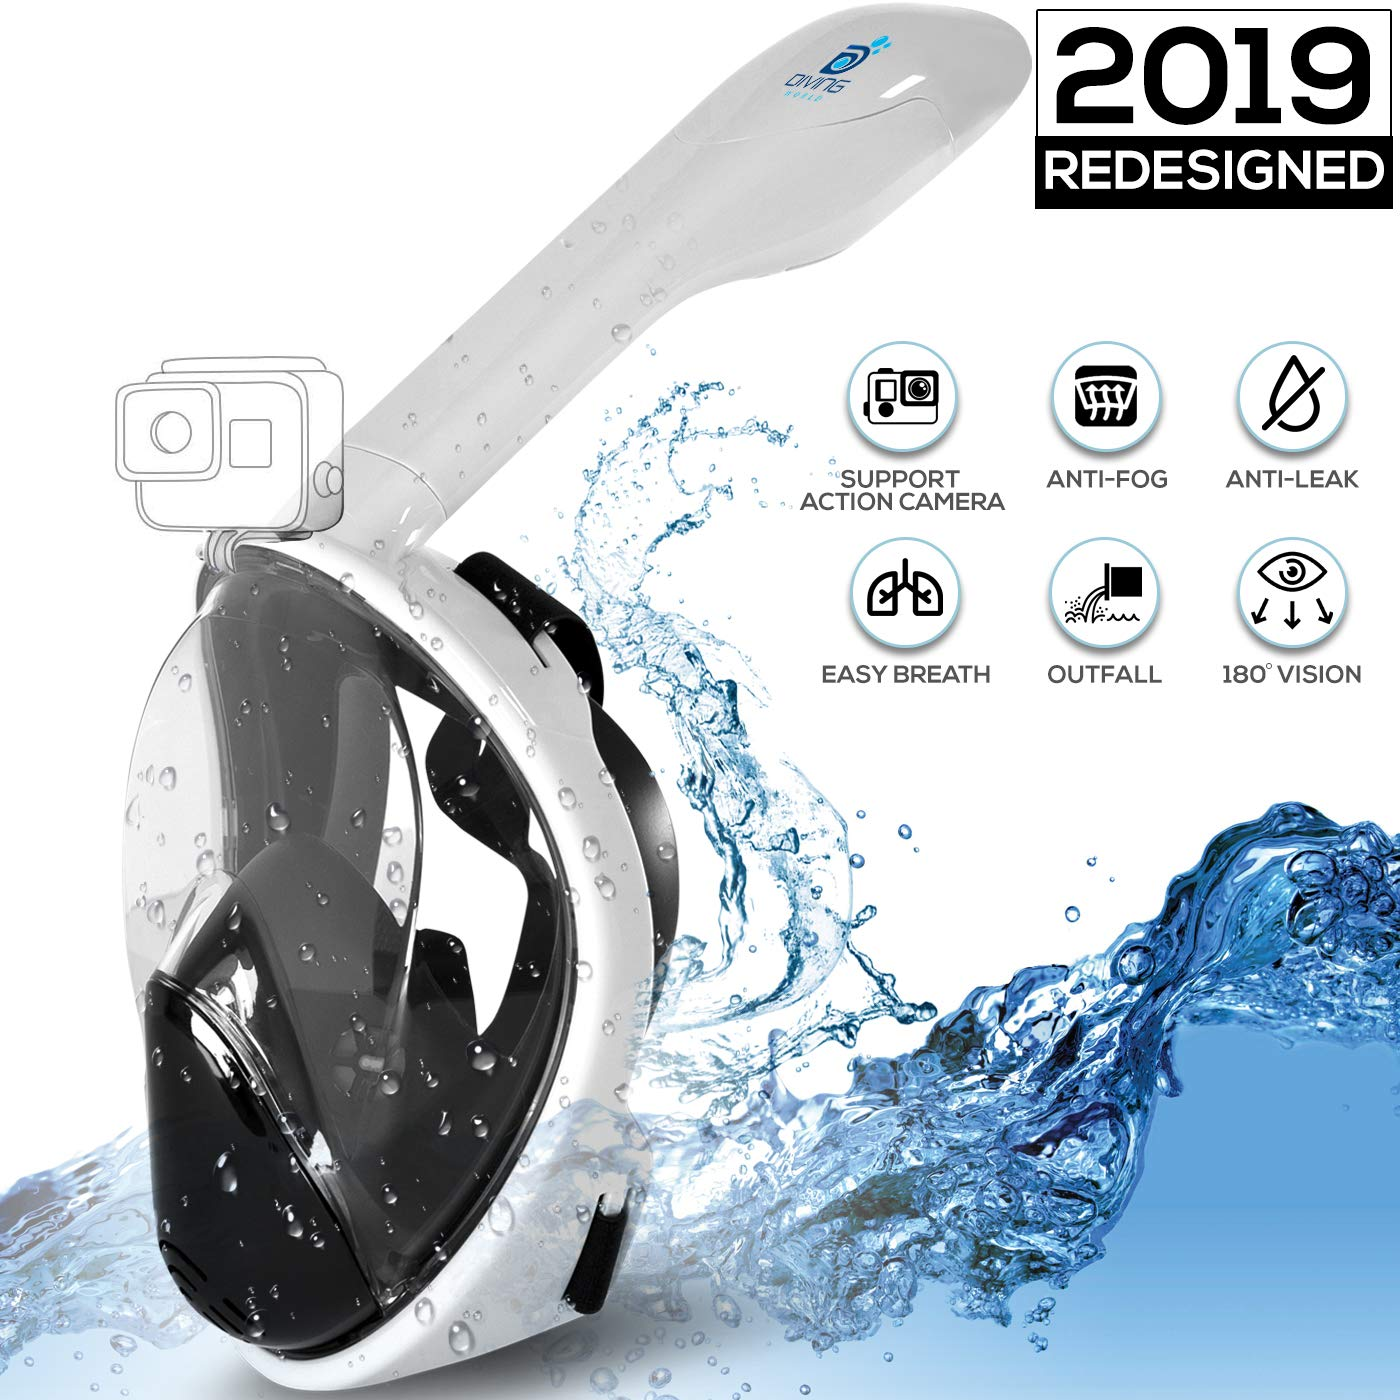 Full Face Snorkel Mask Set for Adults by Diving World - Re-Designed & Improved Masks - Incredible 180° Underwater Experience - Dry Top, Anti Fog Tech - Go Pro Camera Mount - Dive & Snorkel EBook by diving world